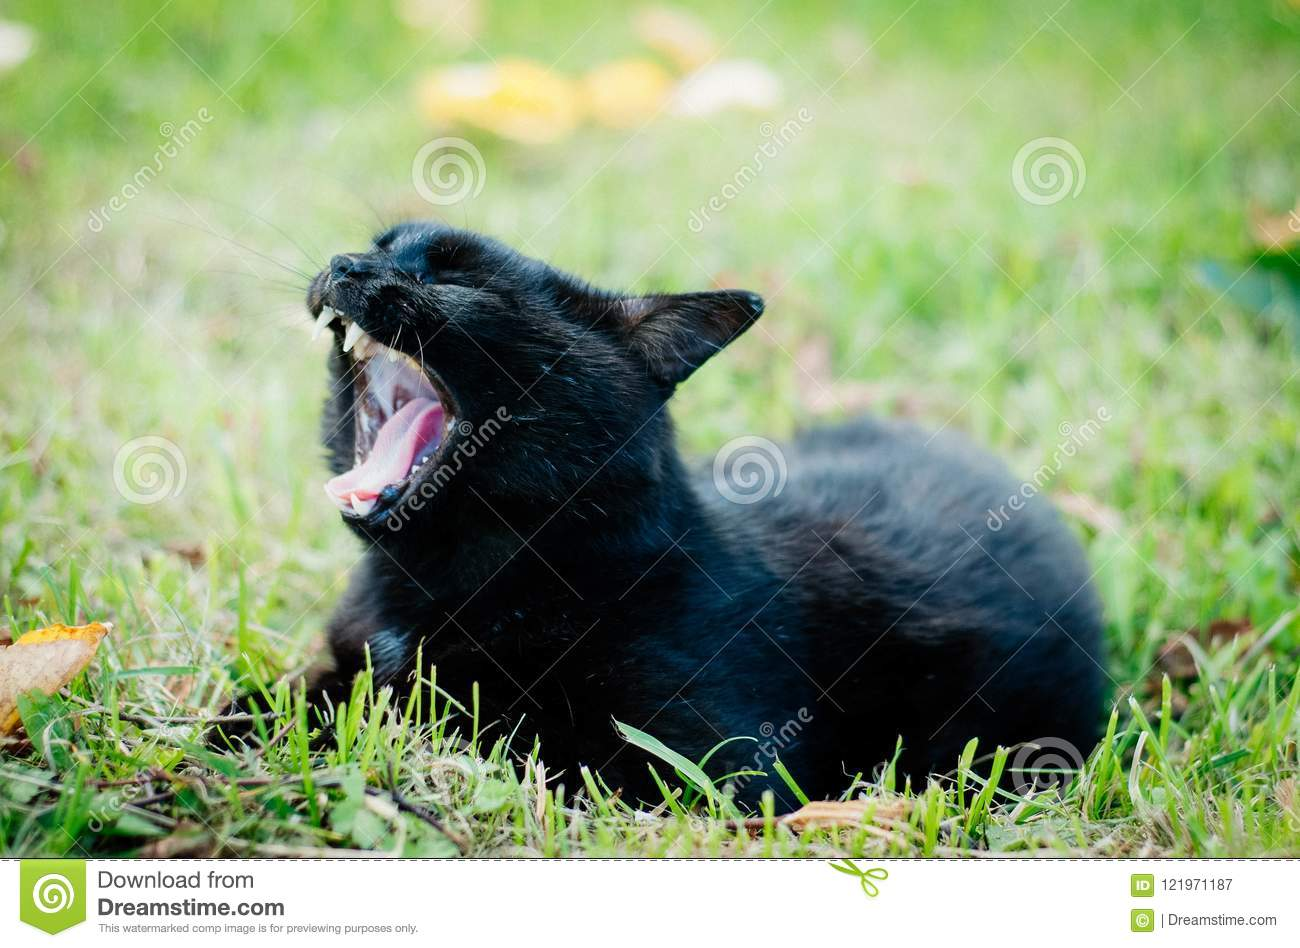 Black Cat Yawning On Green Grass Stock Image Image Of Green Lies